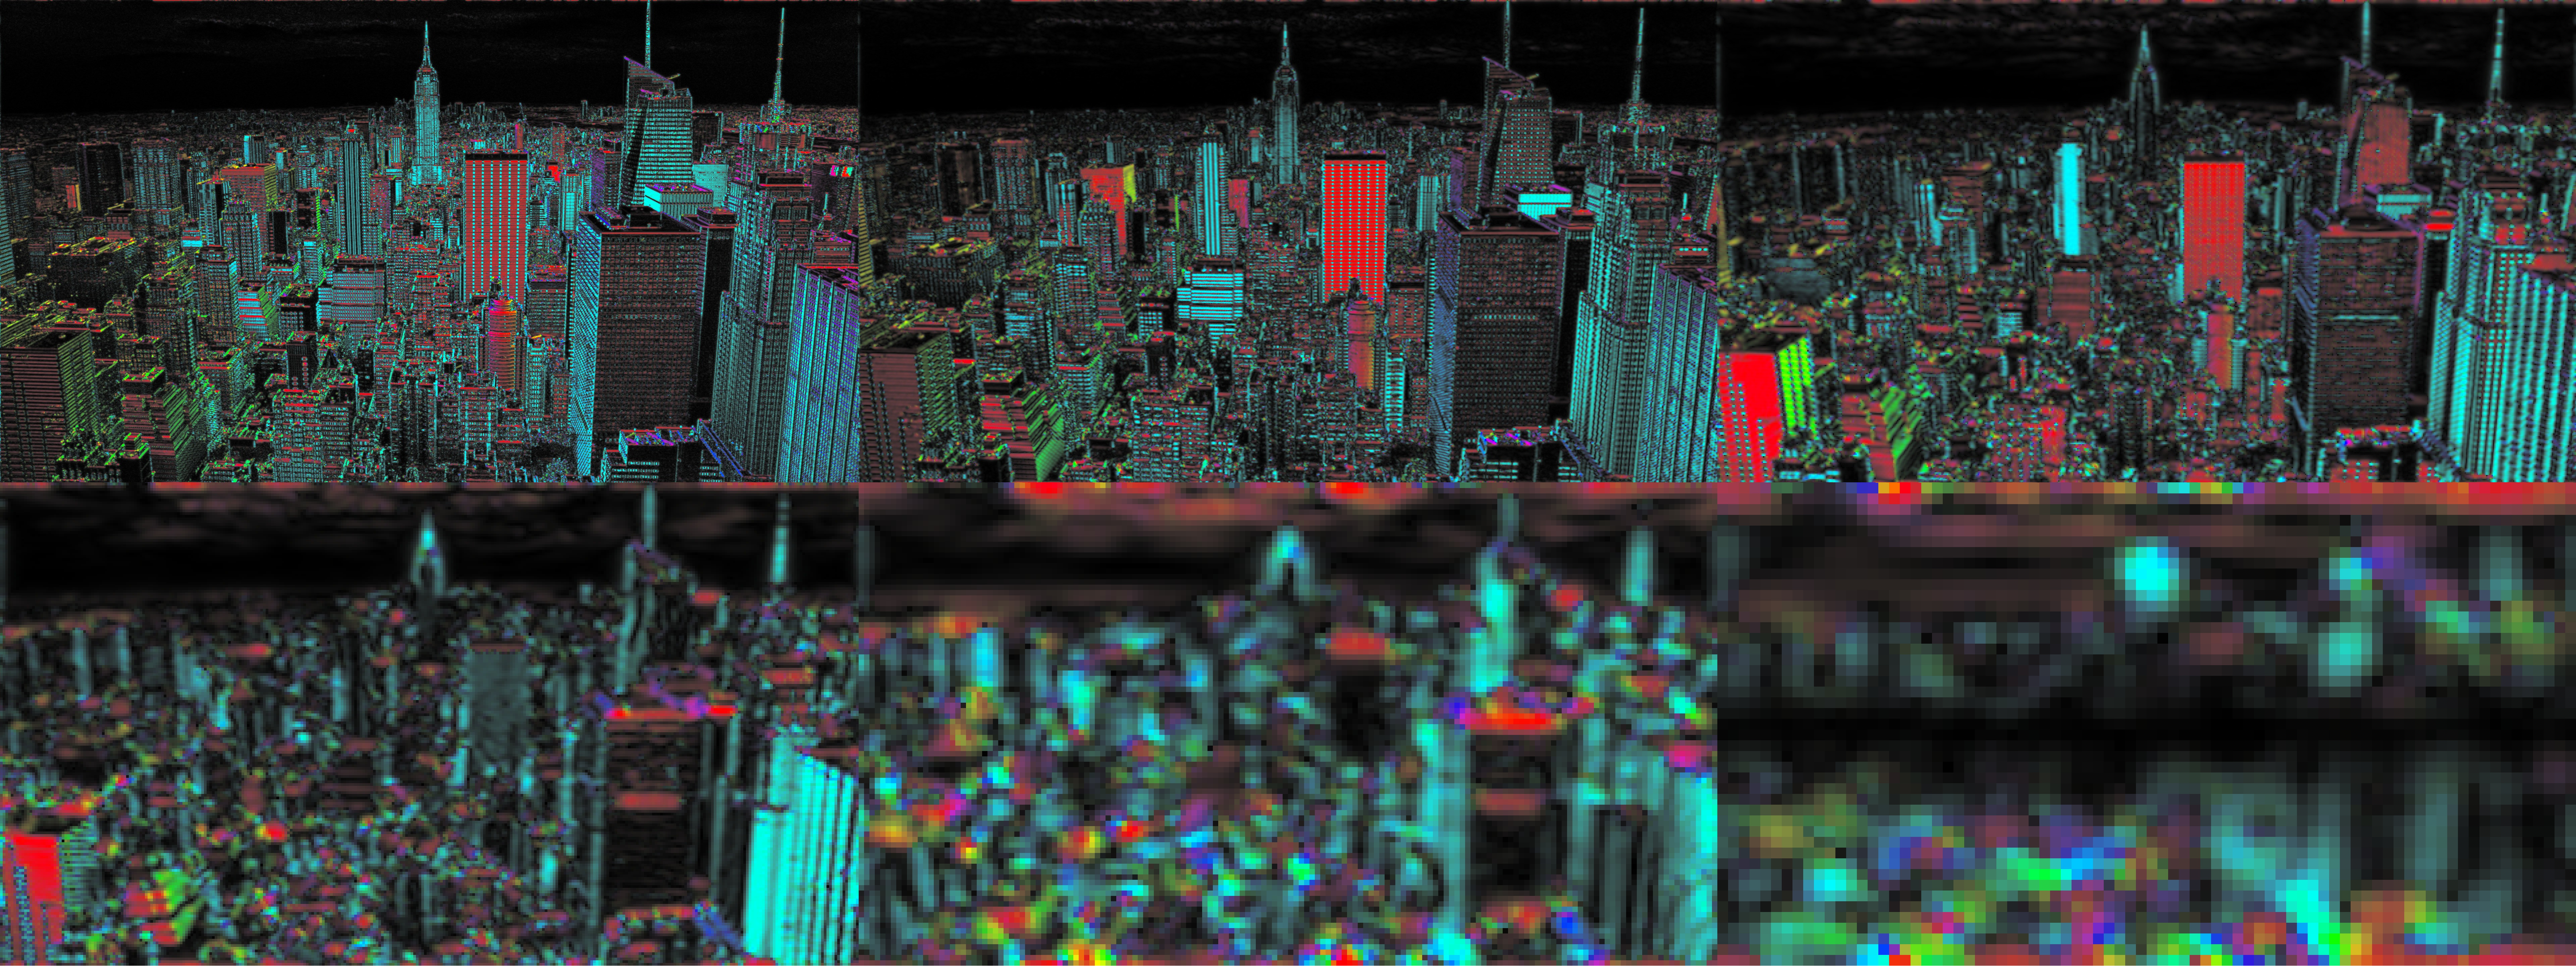 Steerable Pyramid frequency decomposition (6 level) of New York image. Hue component = local analysing filter orienta		</div><!-- .entry-content -->  			</div><!-- .inside-article --> </article><!-- #post-## --> 		</main><!-- #main --> 	</div><!-- #primary -->  	 	</div><!-- #content --> </div><!-- #page -->   <div class=